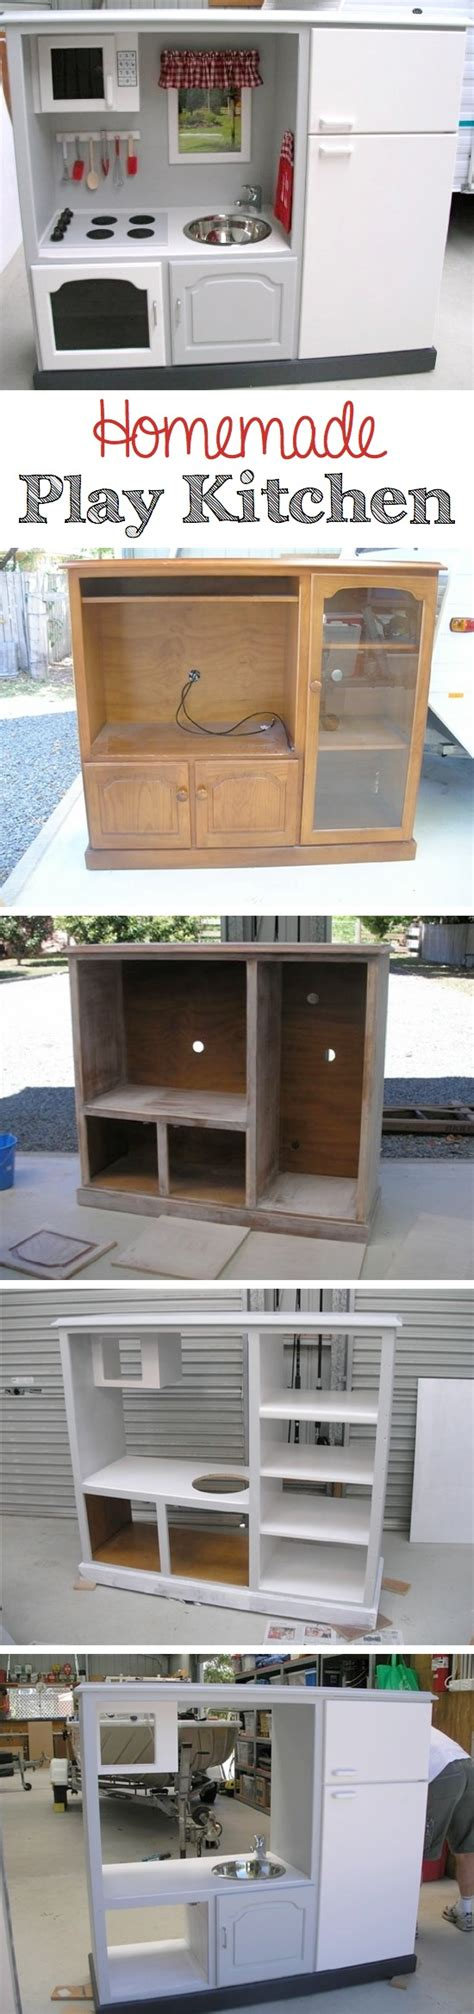 homemade play kitchen  awesome inspiring